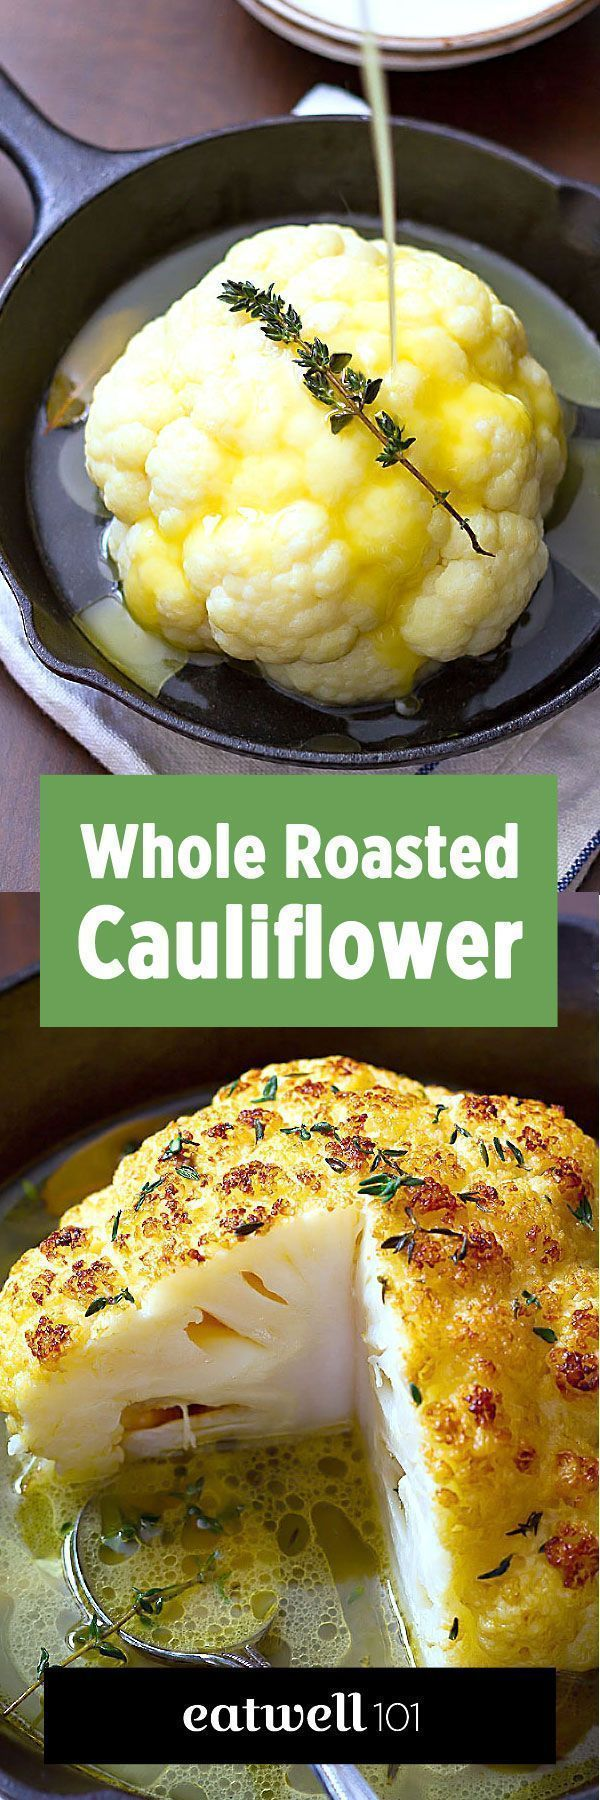 A low carb dinner option that is crisp, tender, and SO delicious! http://www.eatwell101.com/